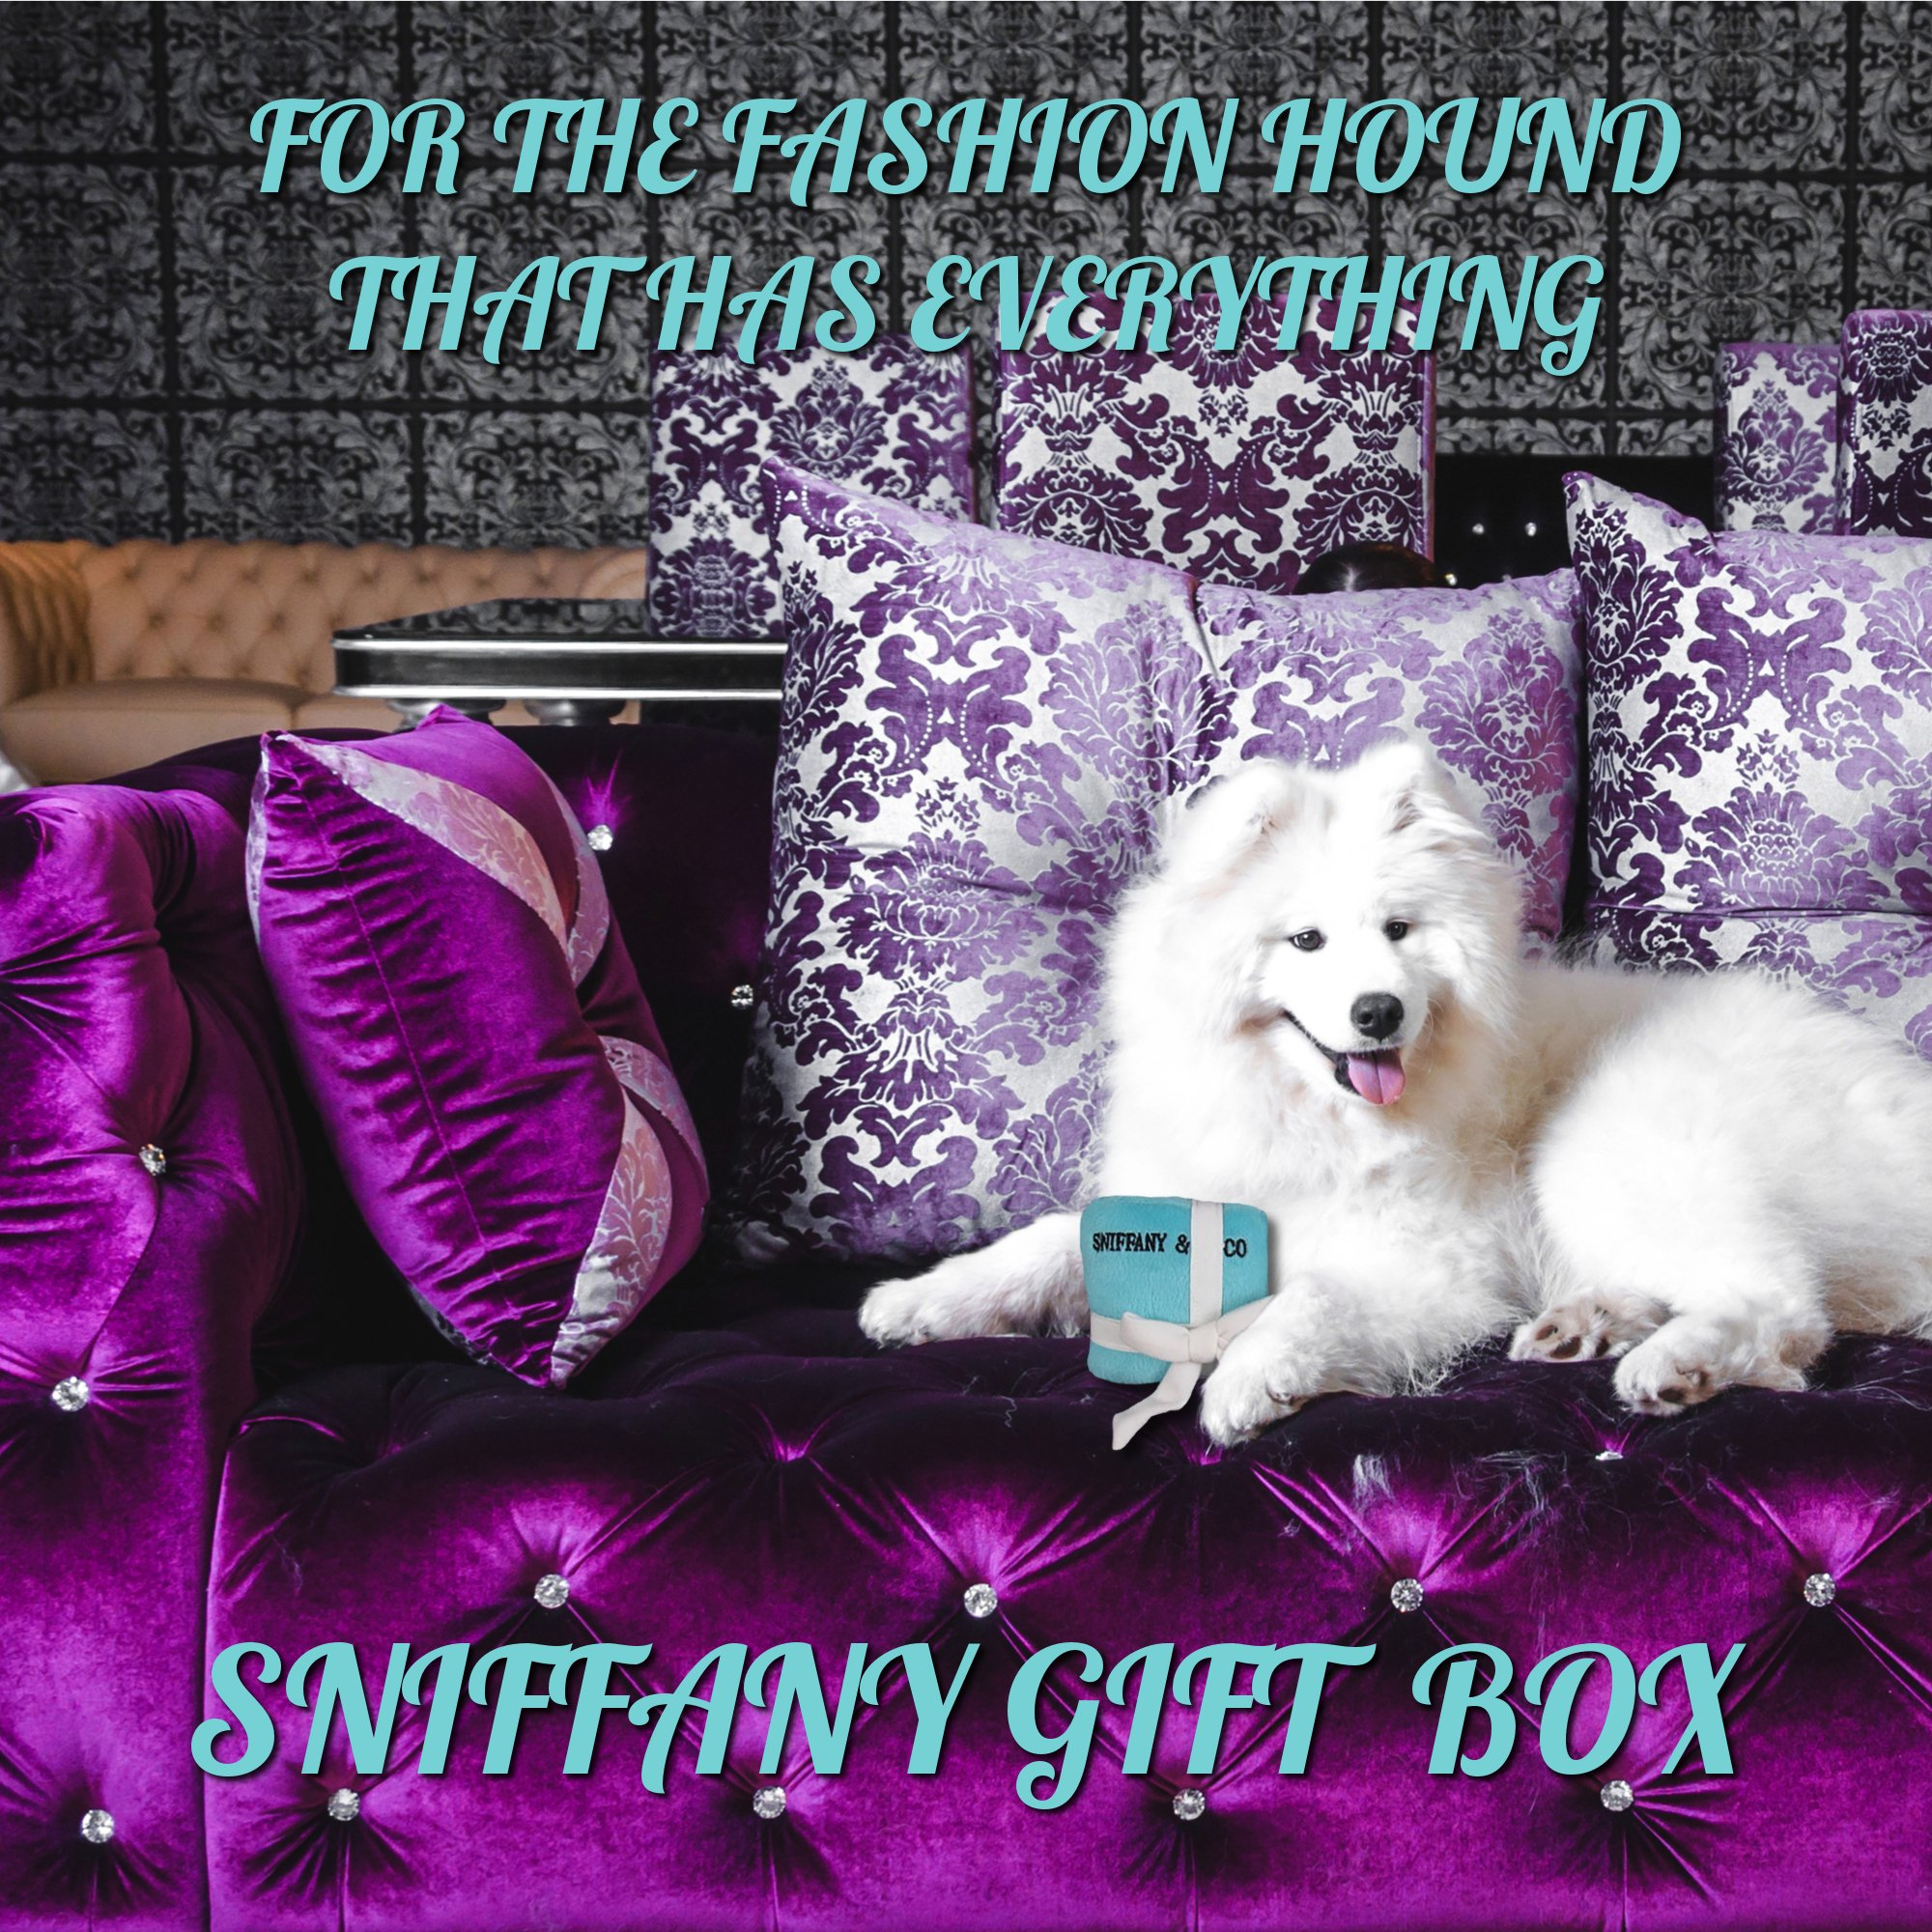 Sniffany and Co Plush Dog Parody GiftBox Toy w/ Squeaker - Small by Dog Diggin Designs by Dog Diggin Designs (Image #3)